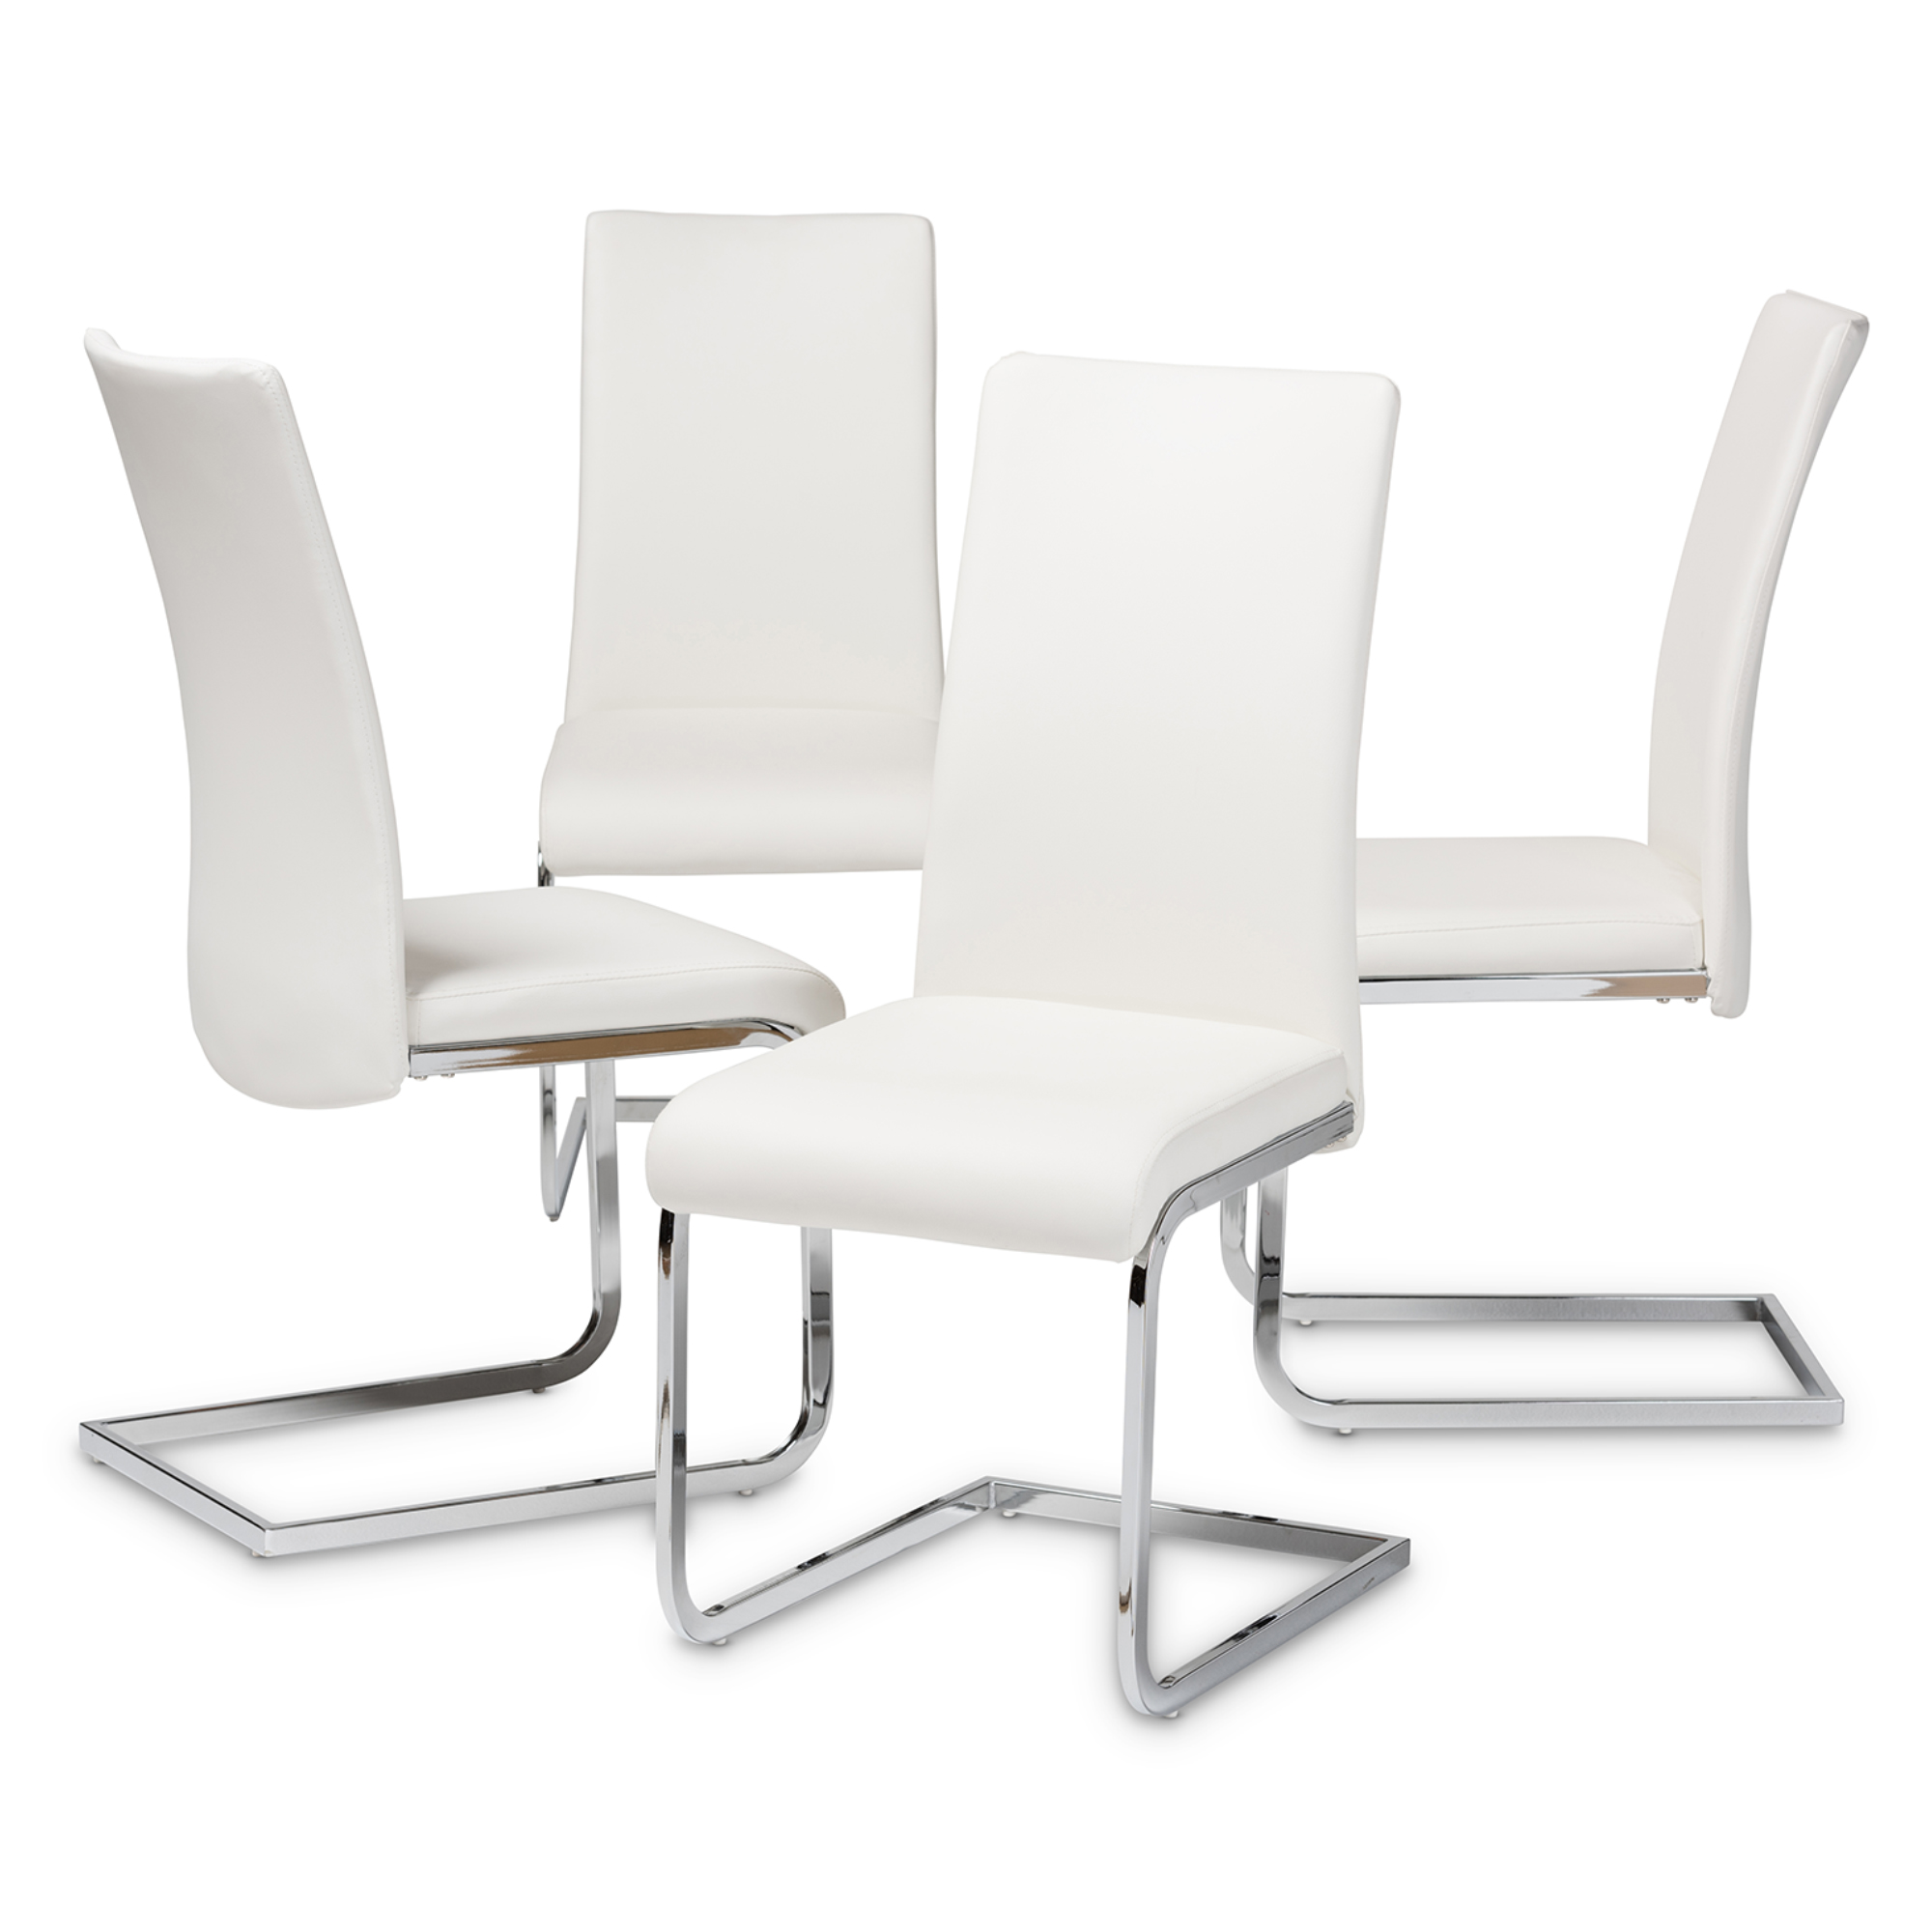 Baxton studio cyprien modern and contemporary white faux leather upholstered dining chair set of 4